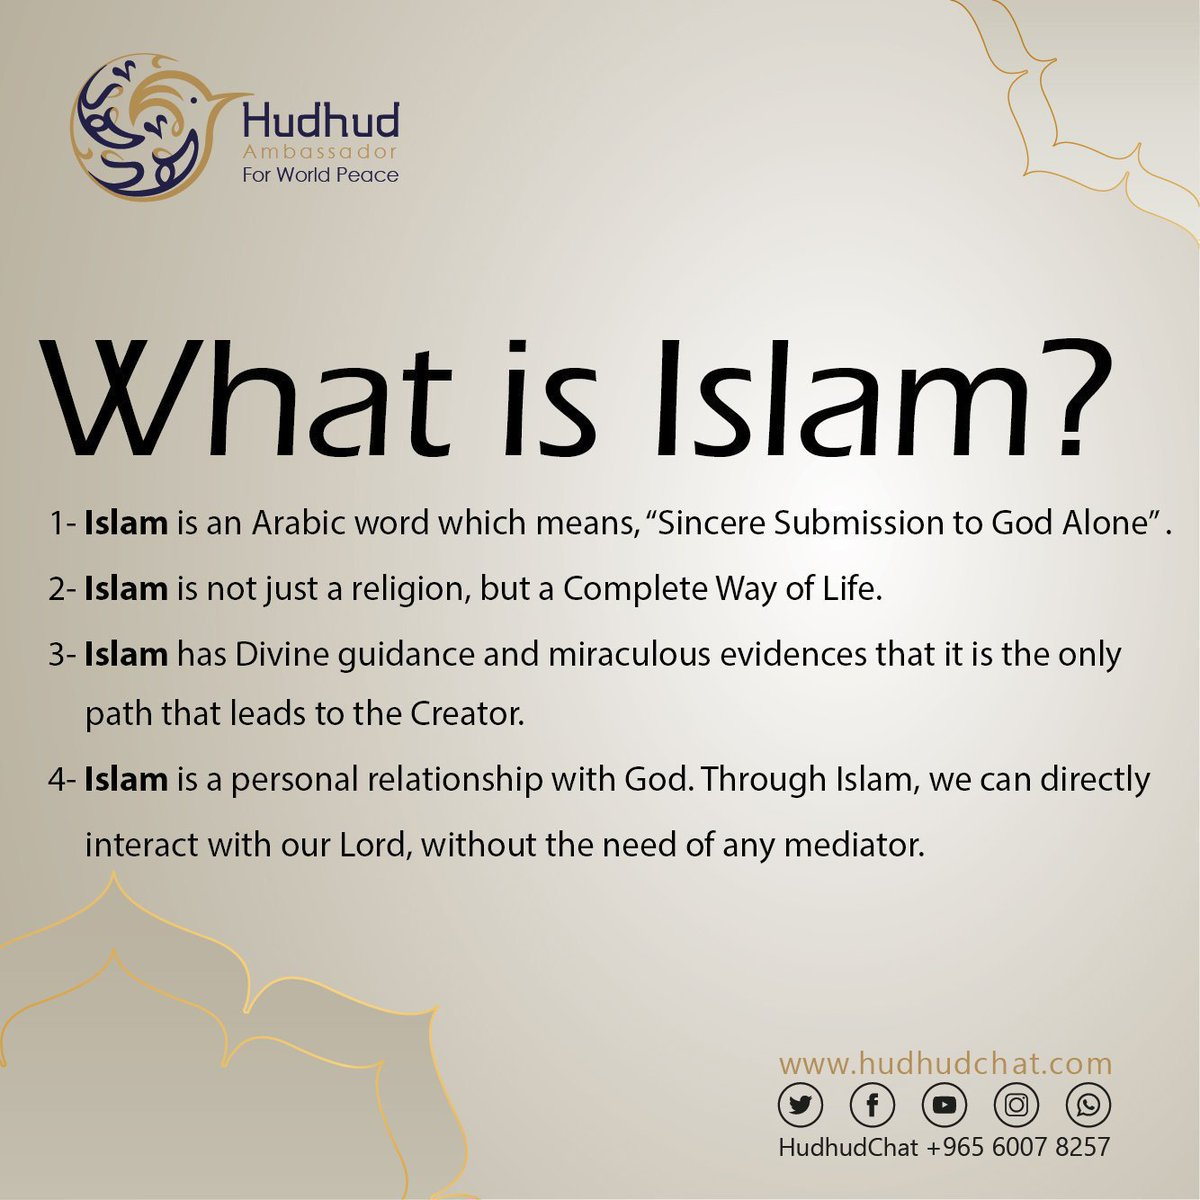 Hudhud Chat On Twitter What Is Islam Check Answer Below For More Please Come And Chat With Us Live Https T Co Bxeyysrpxe Hudhudchat Uk Usa Appleevent Https T Co Hhxhoroyyt